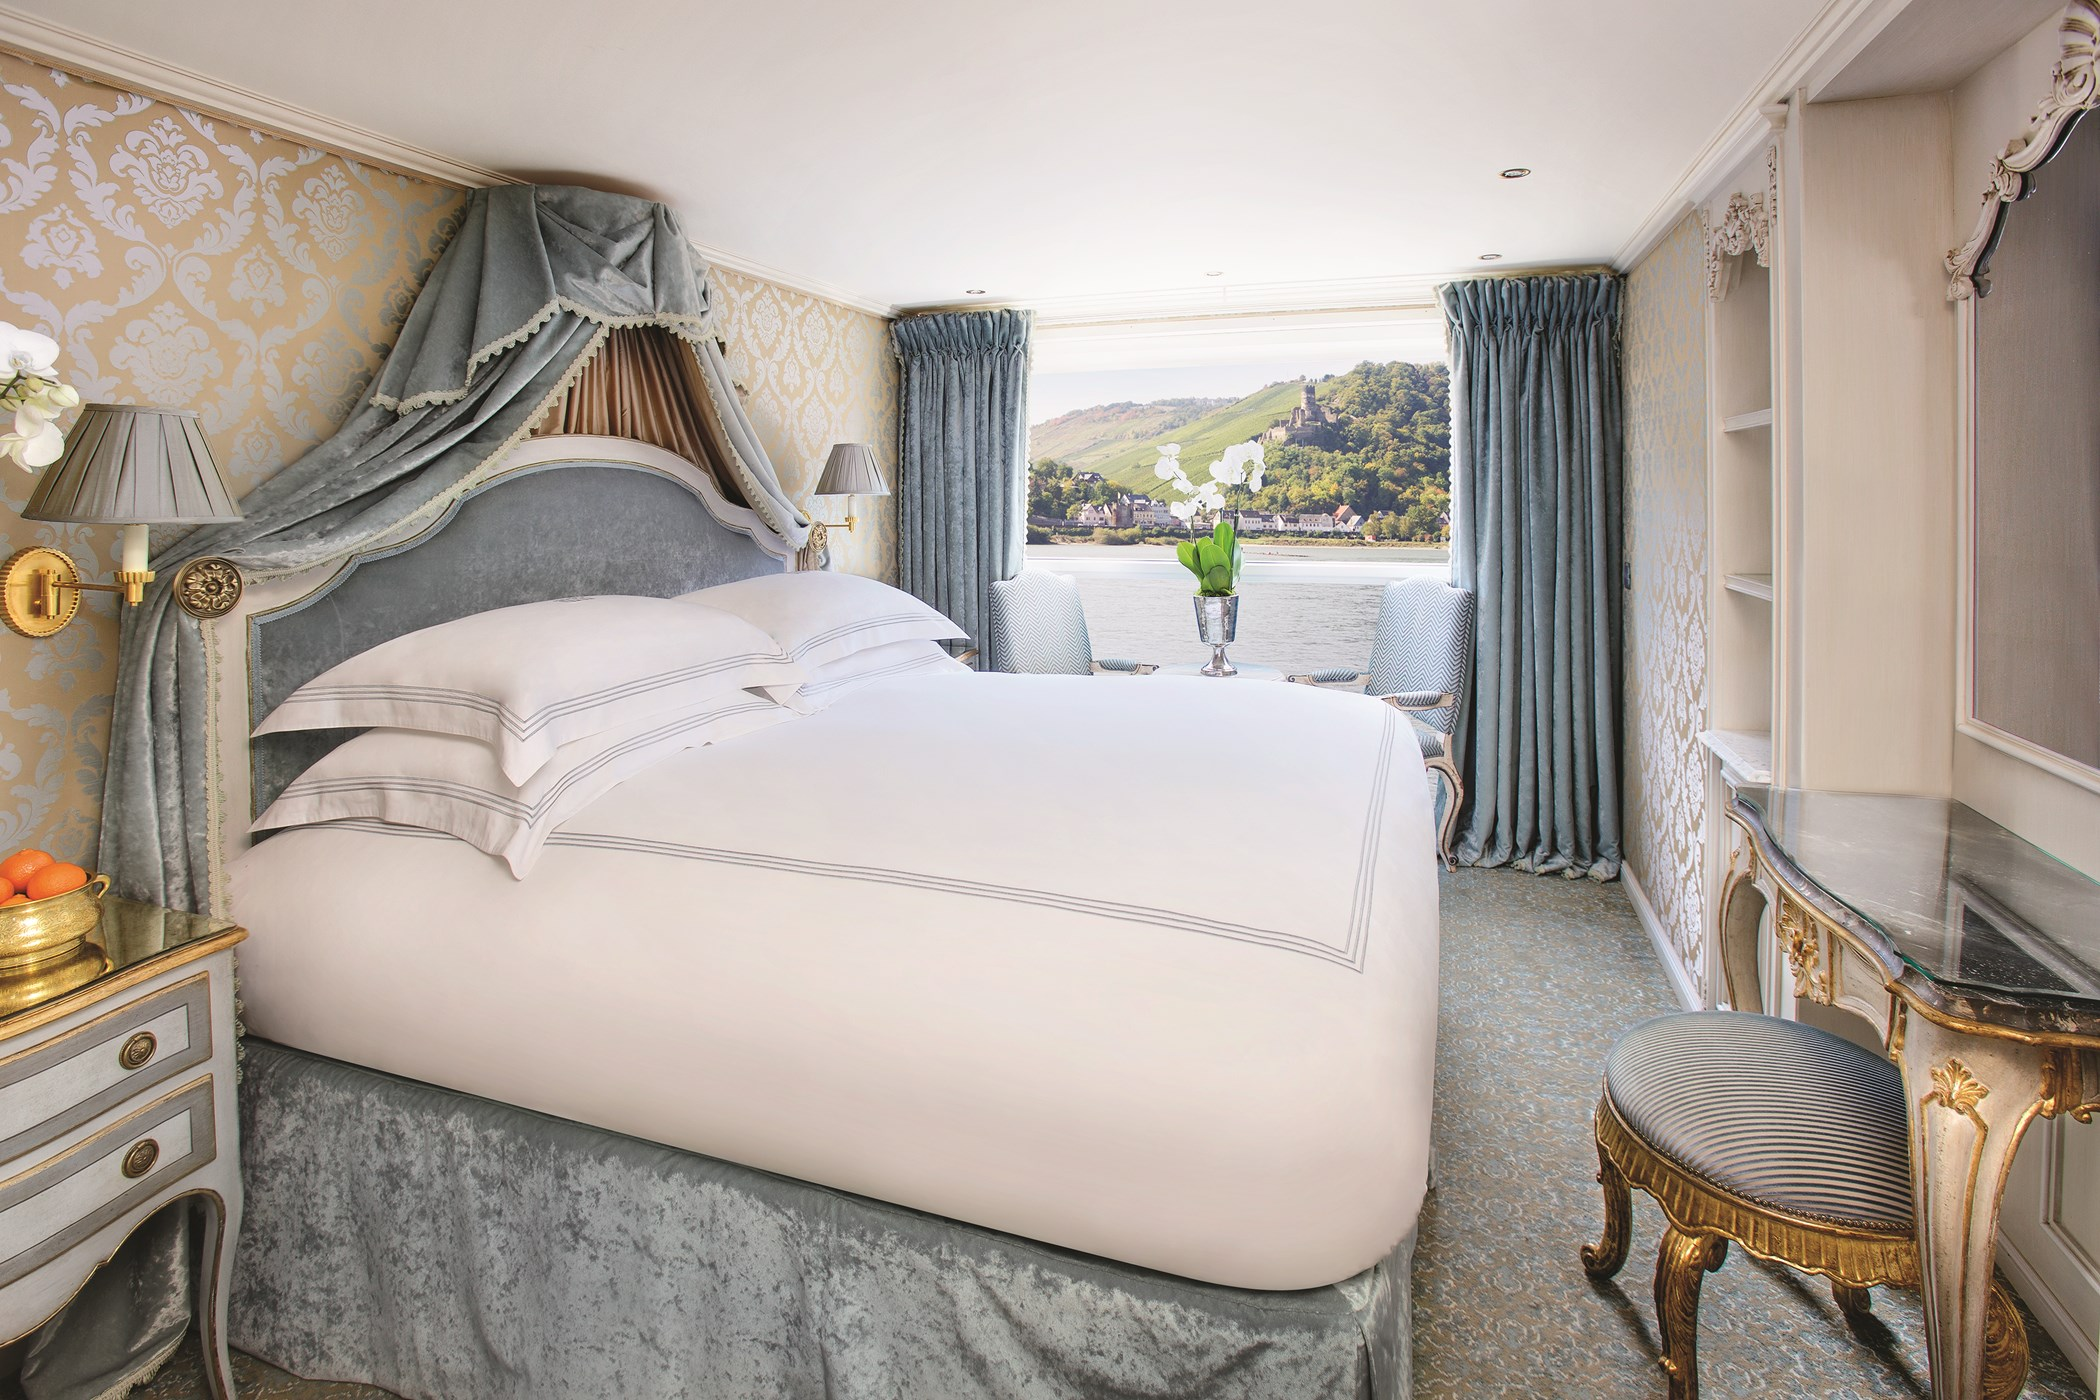 UNIWORLD Boutique River Cruises SS Maria Theresa Accommodation Stateroom Category 3 4.jpg